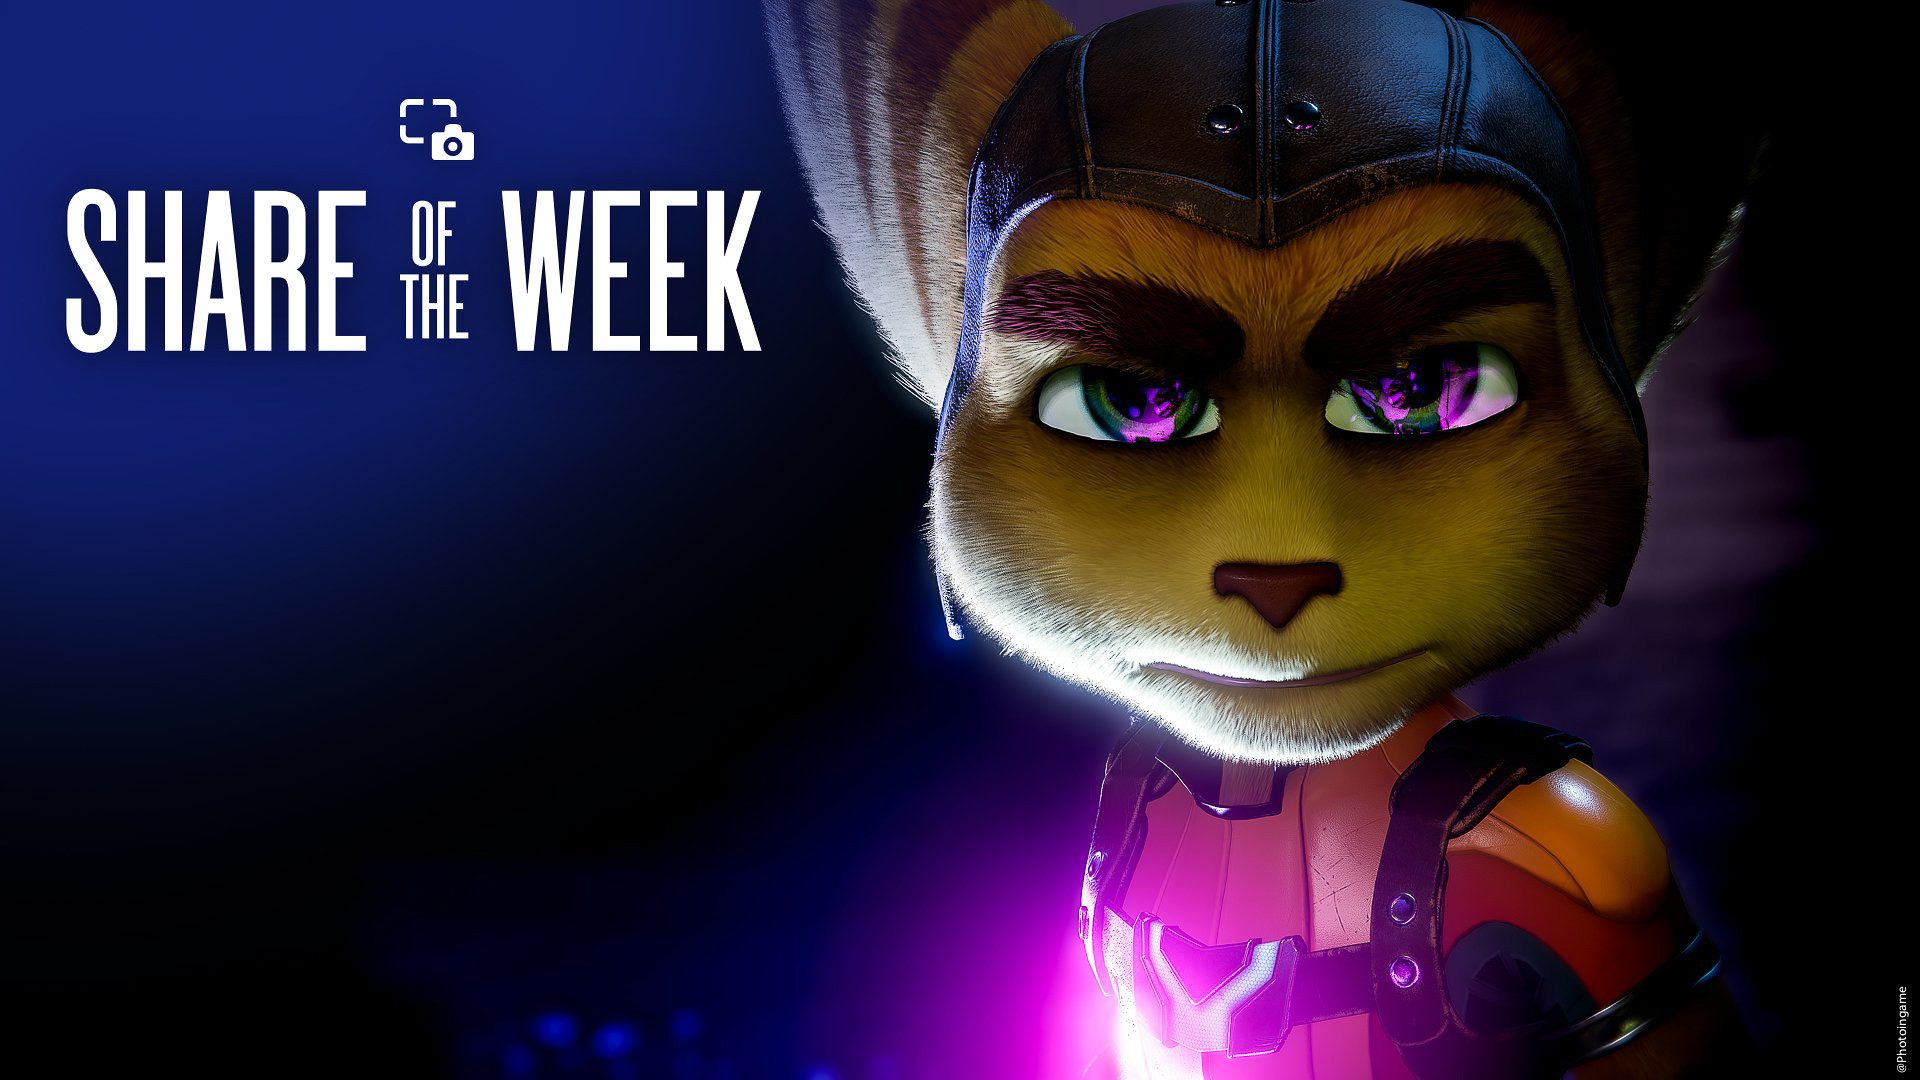 share-of-the-week:-ratchet-&-clank:-rift-apart-photo-manner